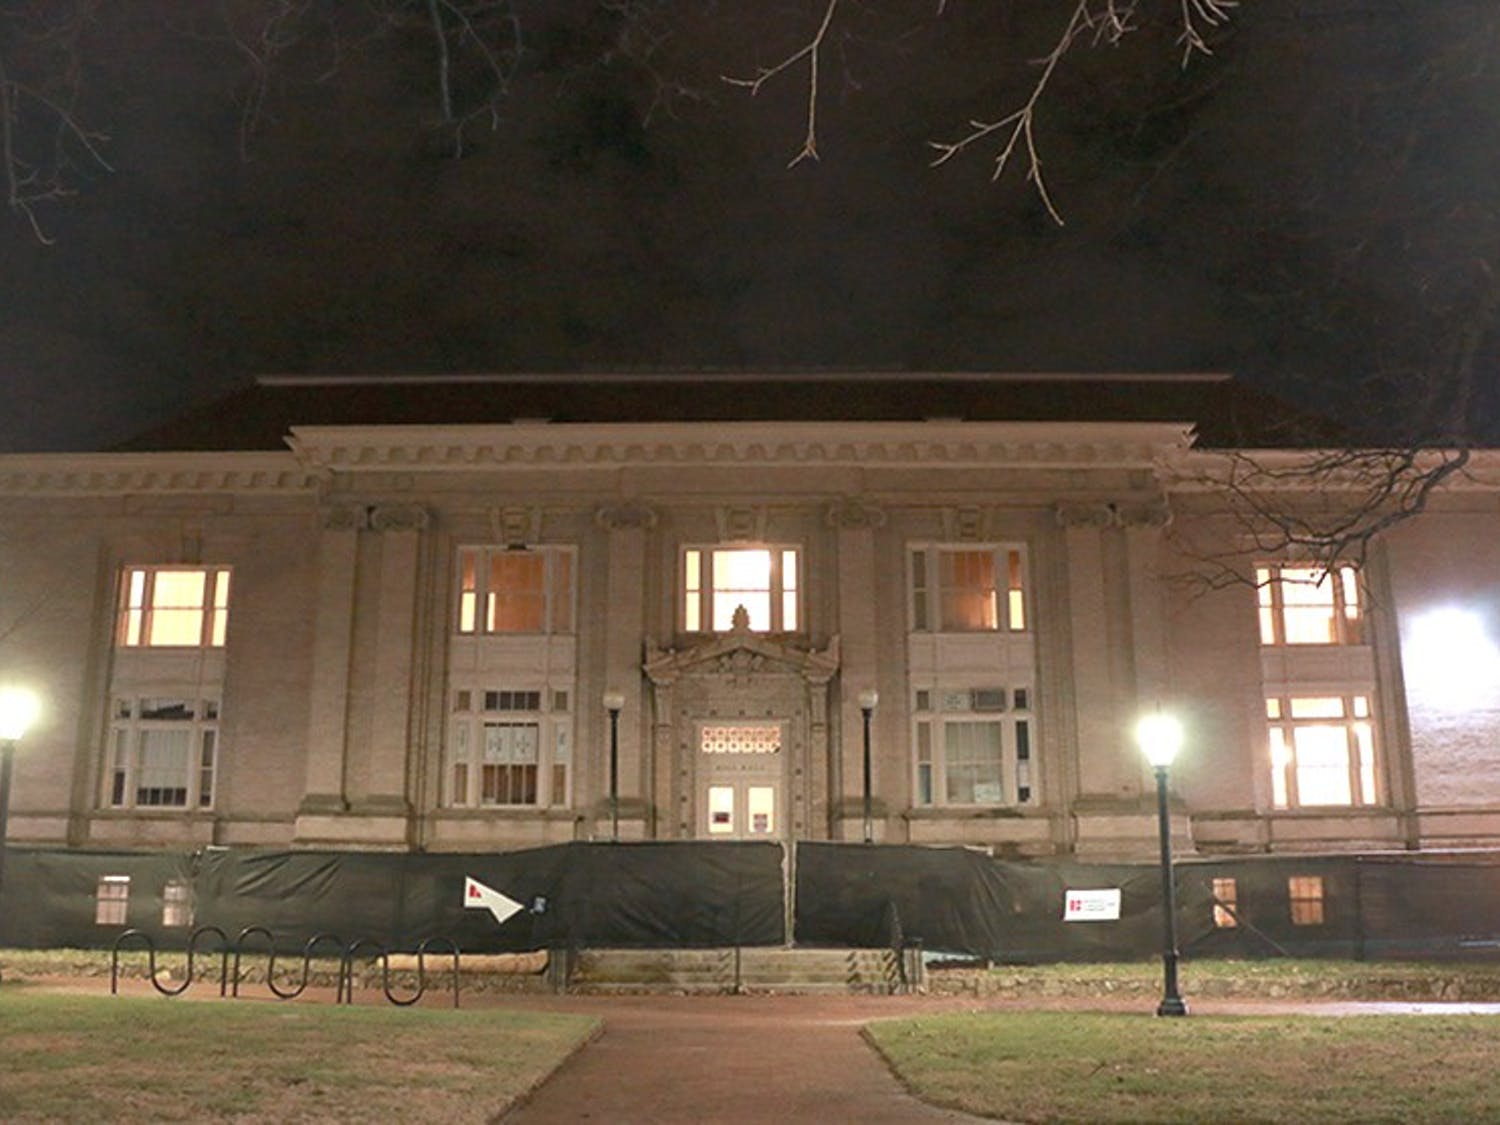 The back of Hill Hall fenced off from the public due to construction.